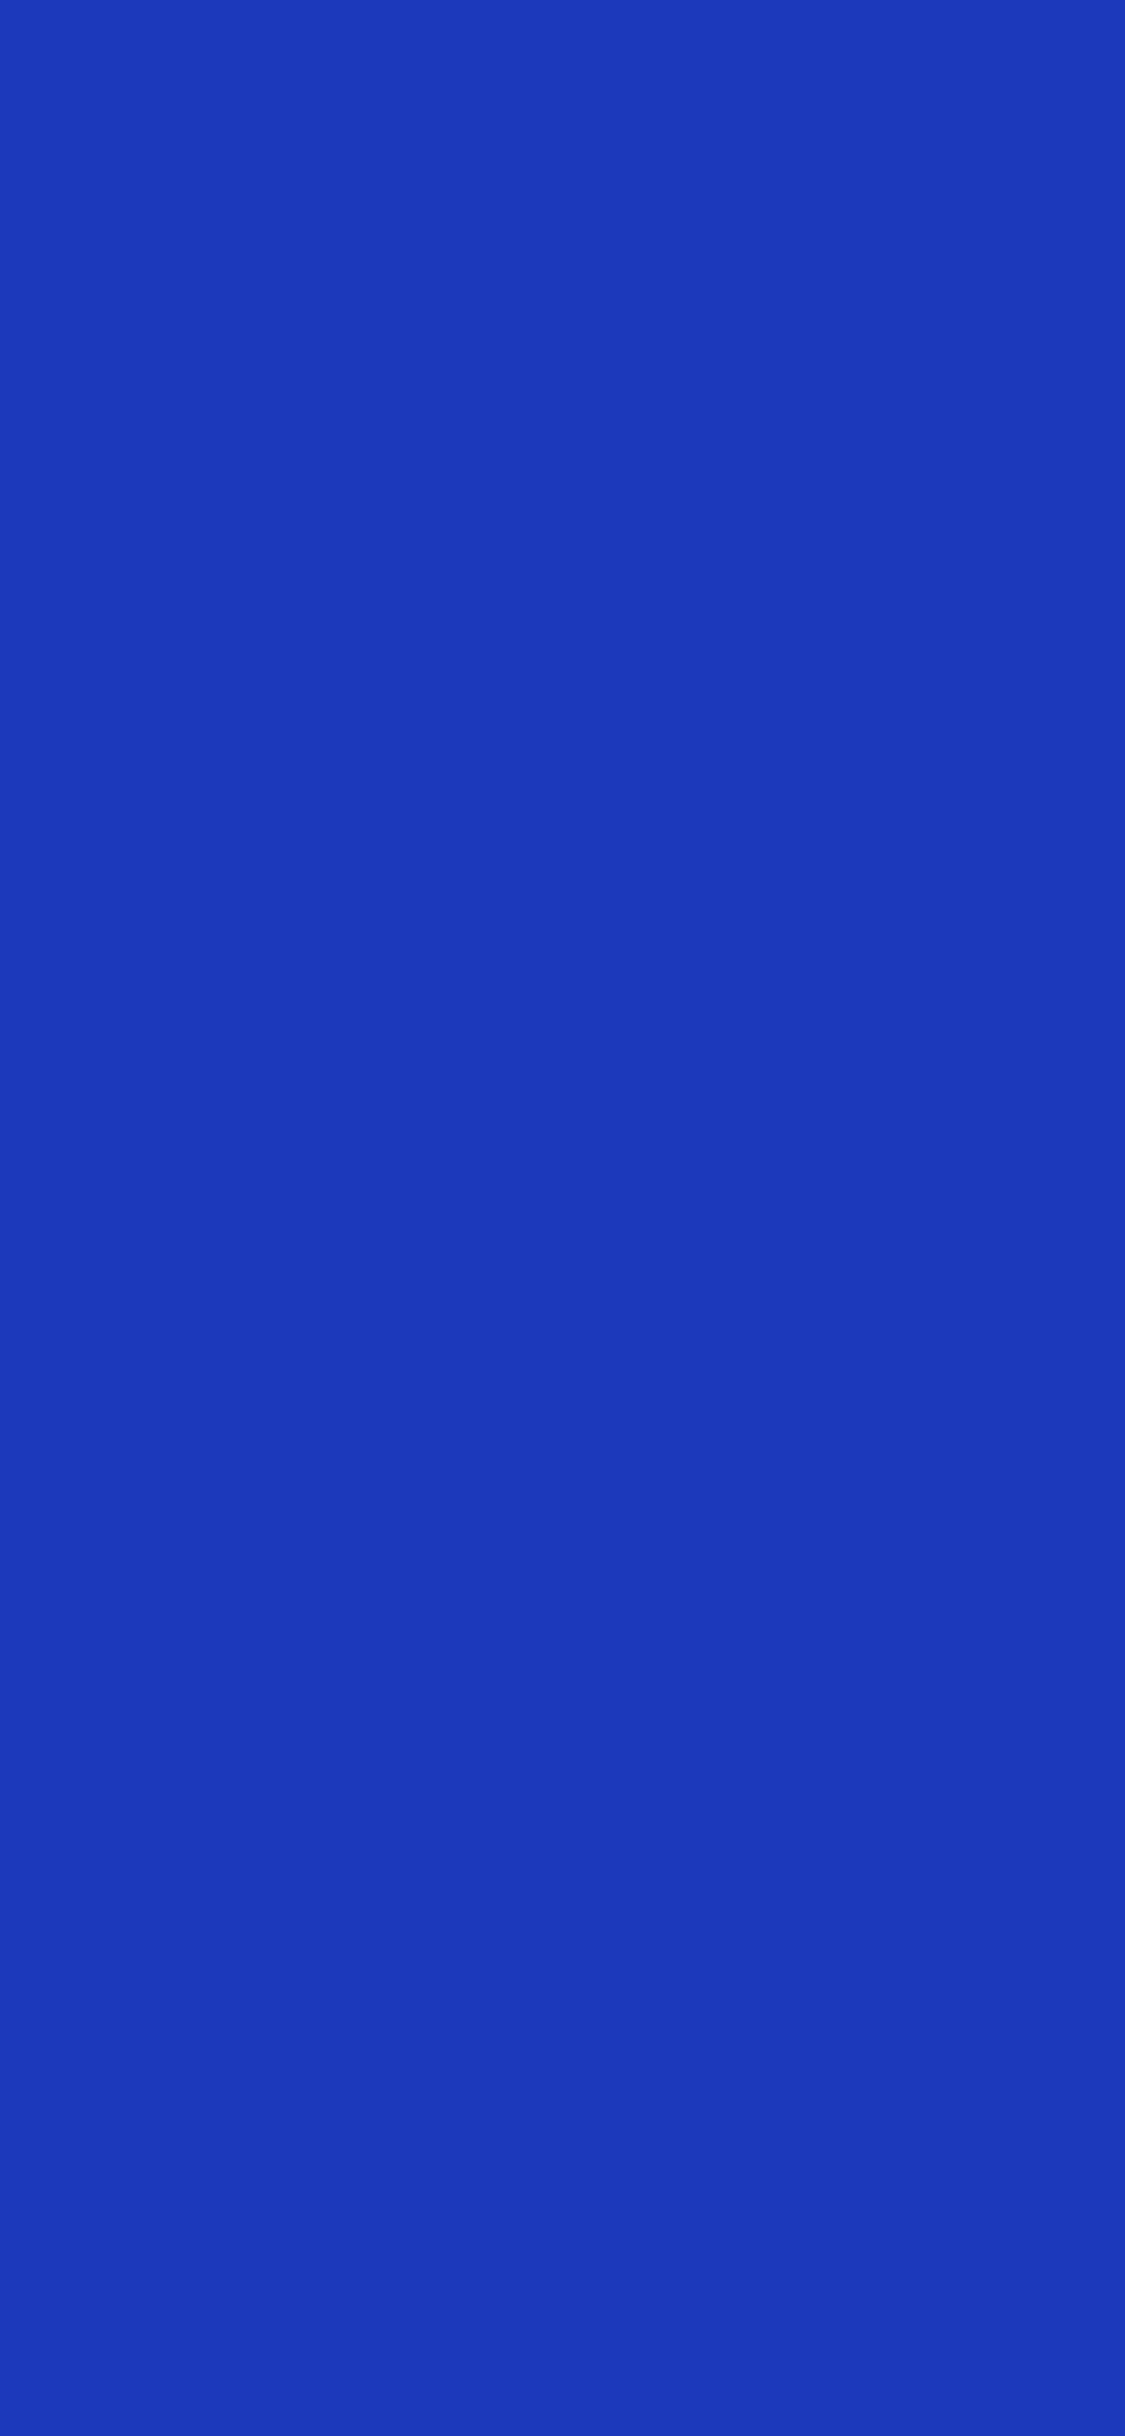 1125x2436 Persian Blue Solid Color Background